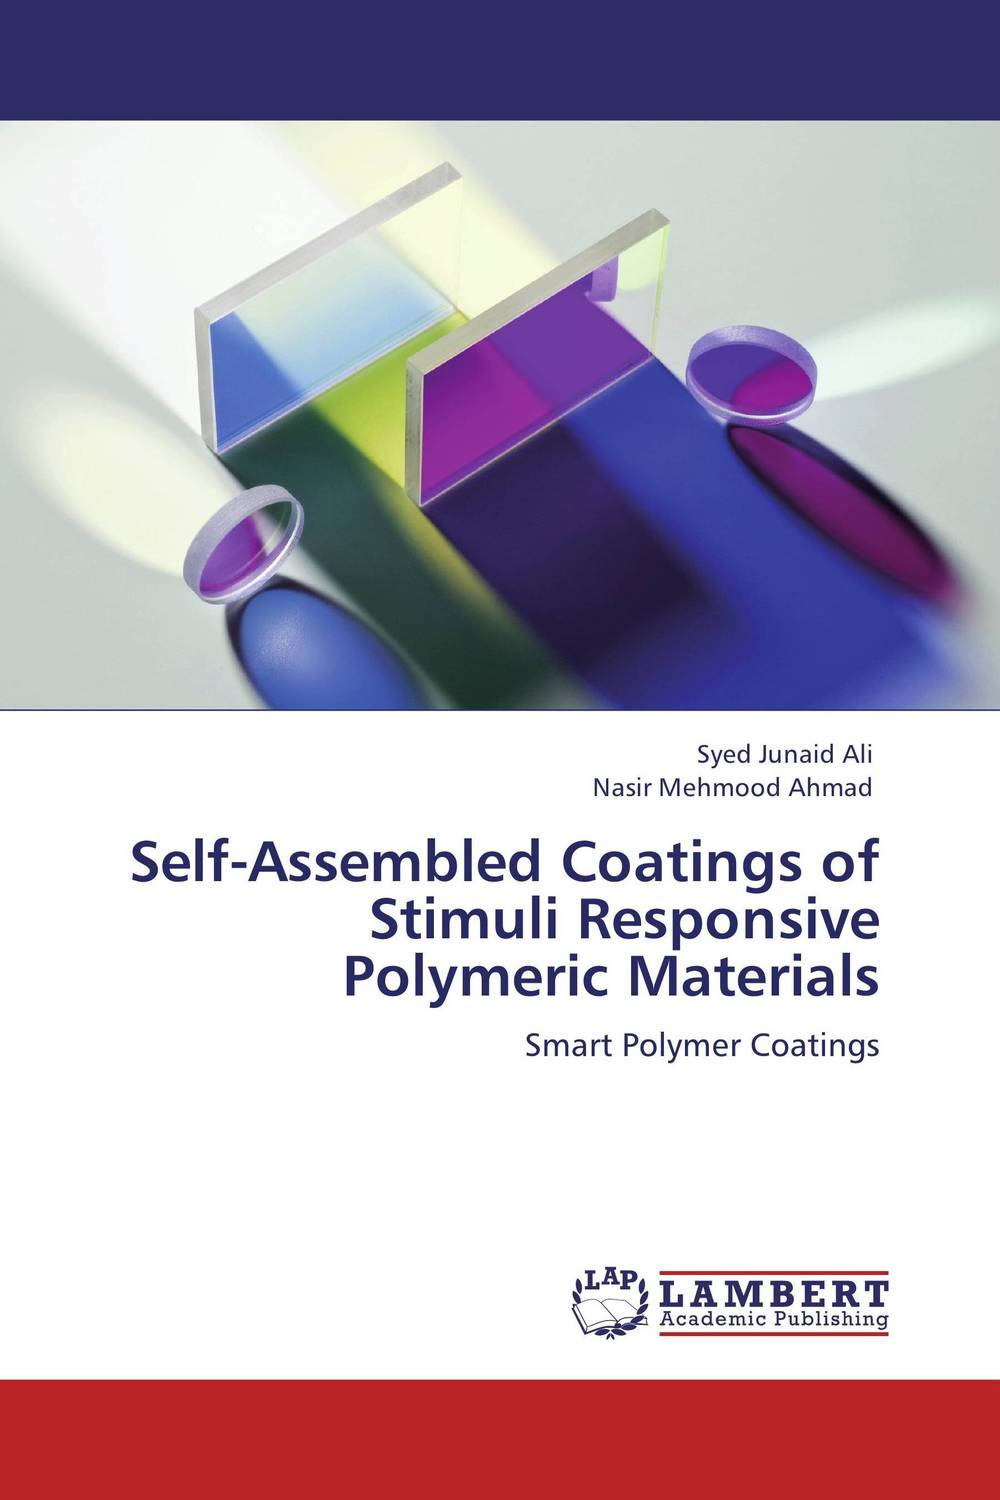 Self-Assembled Coatings of Stimuli Responsive Polymeric Materials si atrp for attaining tailor made polymer coatings